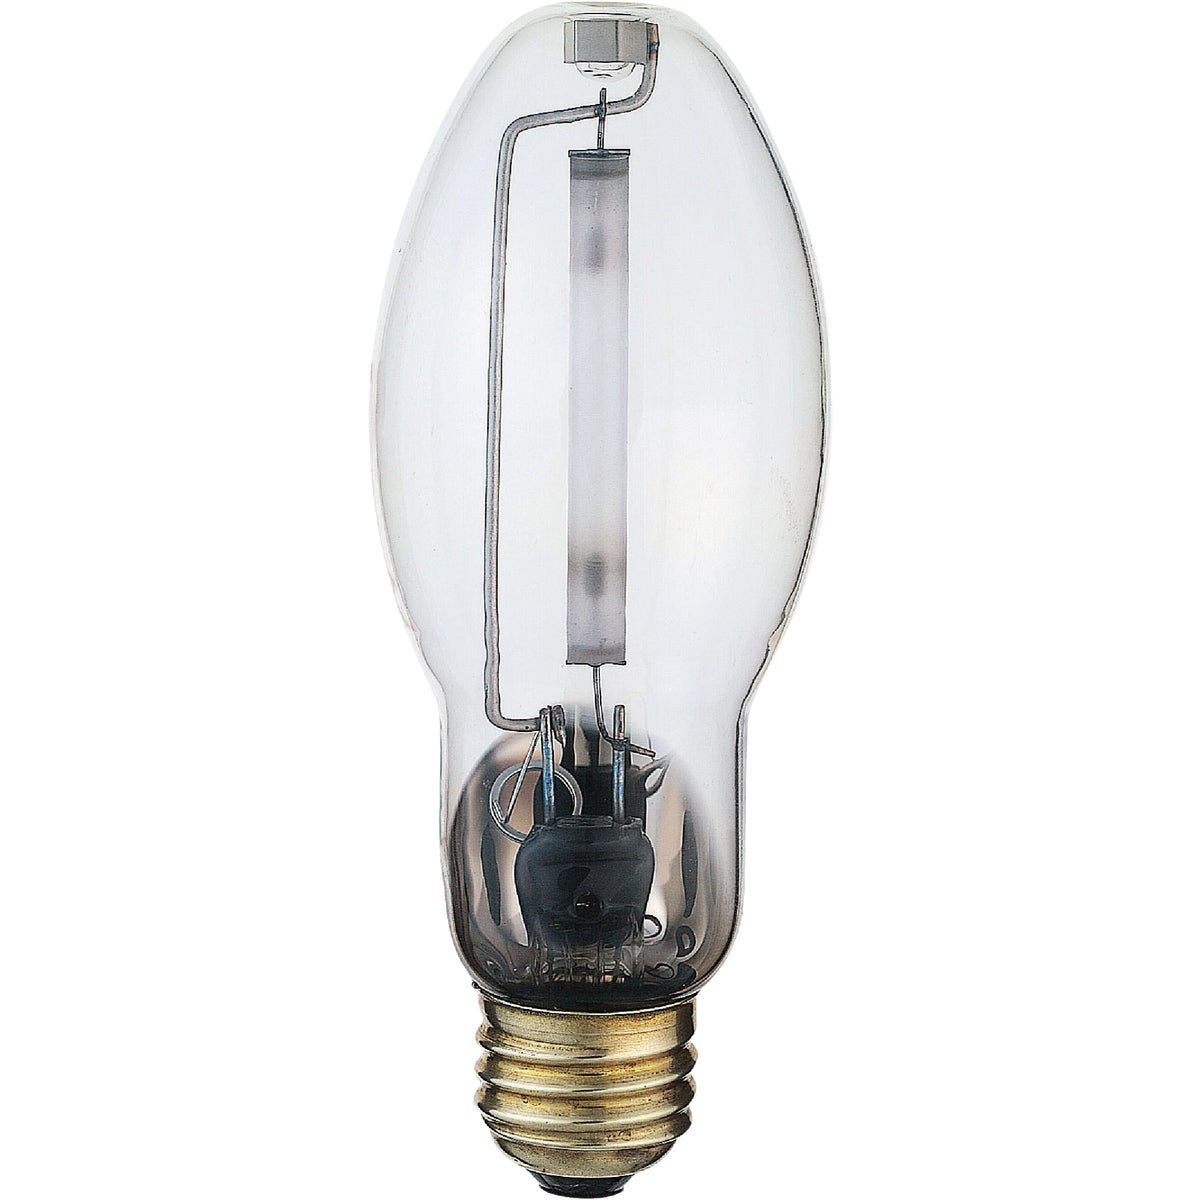 150W HP SODIUM BULB - 26424 LU150/MED/CP by G E Lighting Incom